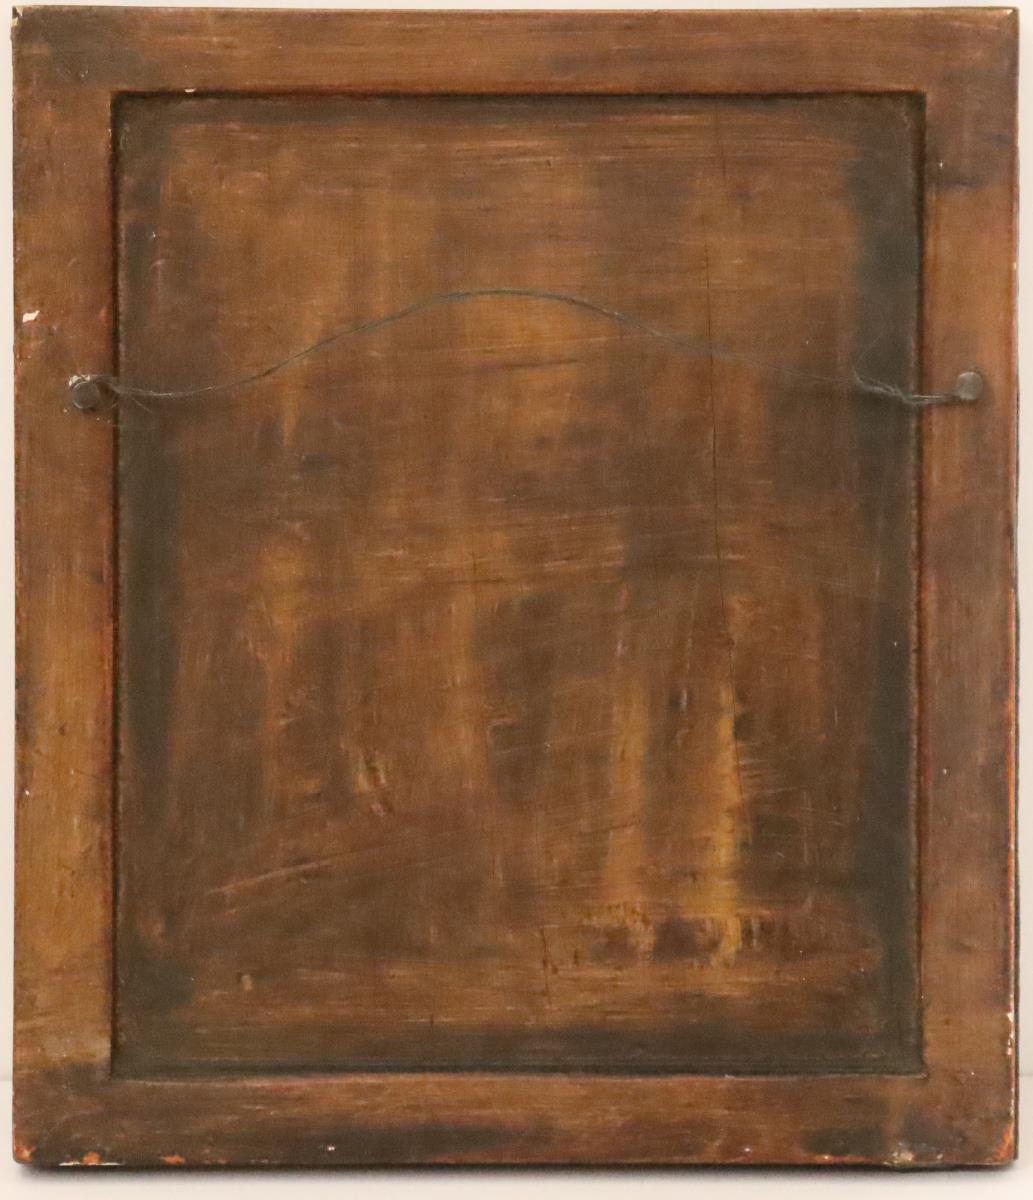 Collection of Four Paintings of Saints on Panel - Image 5 of 9